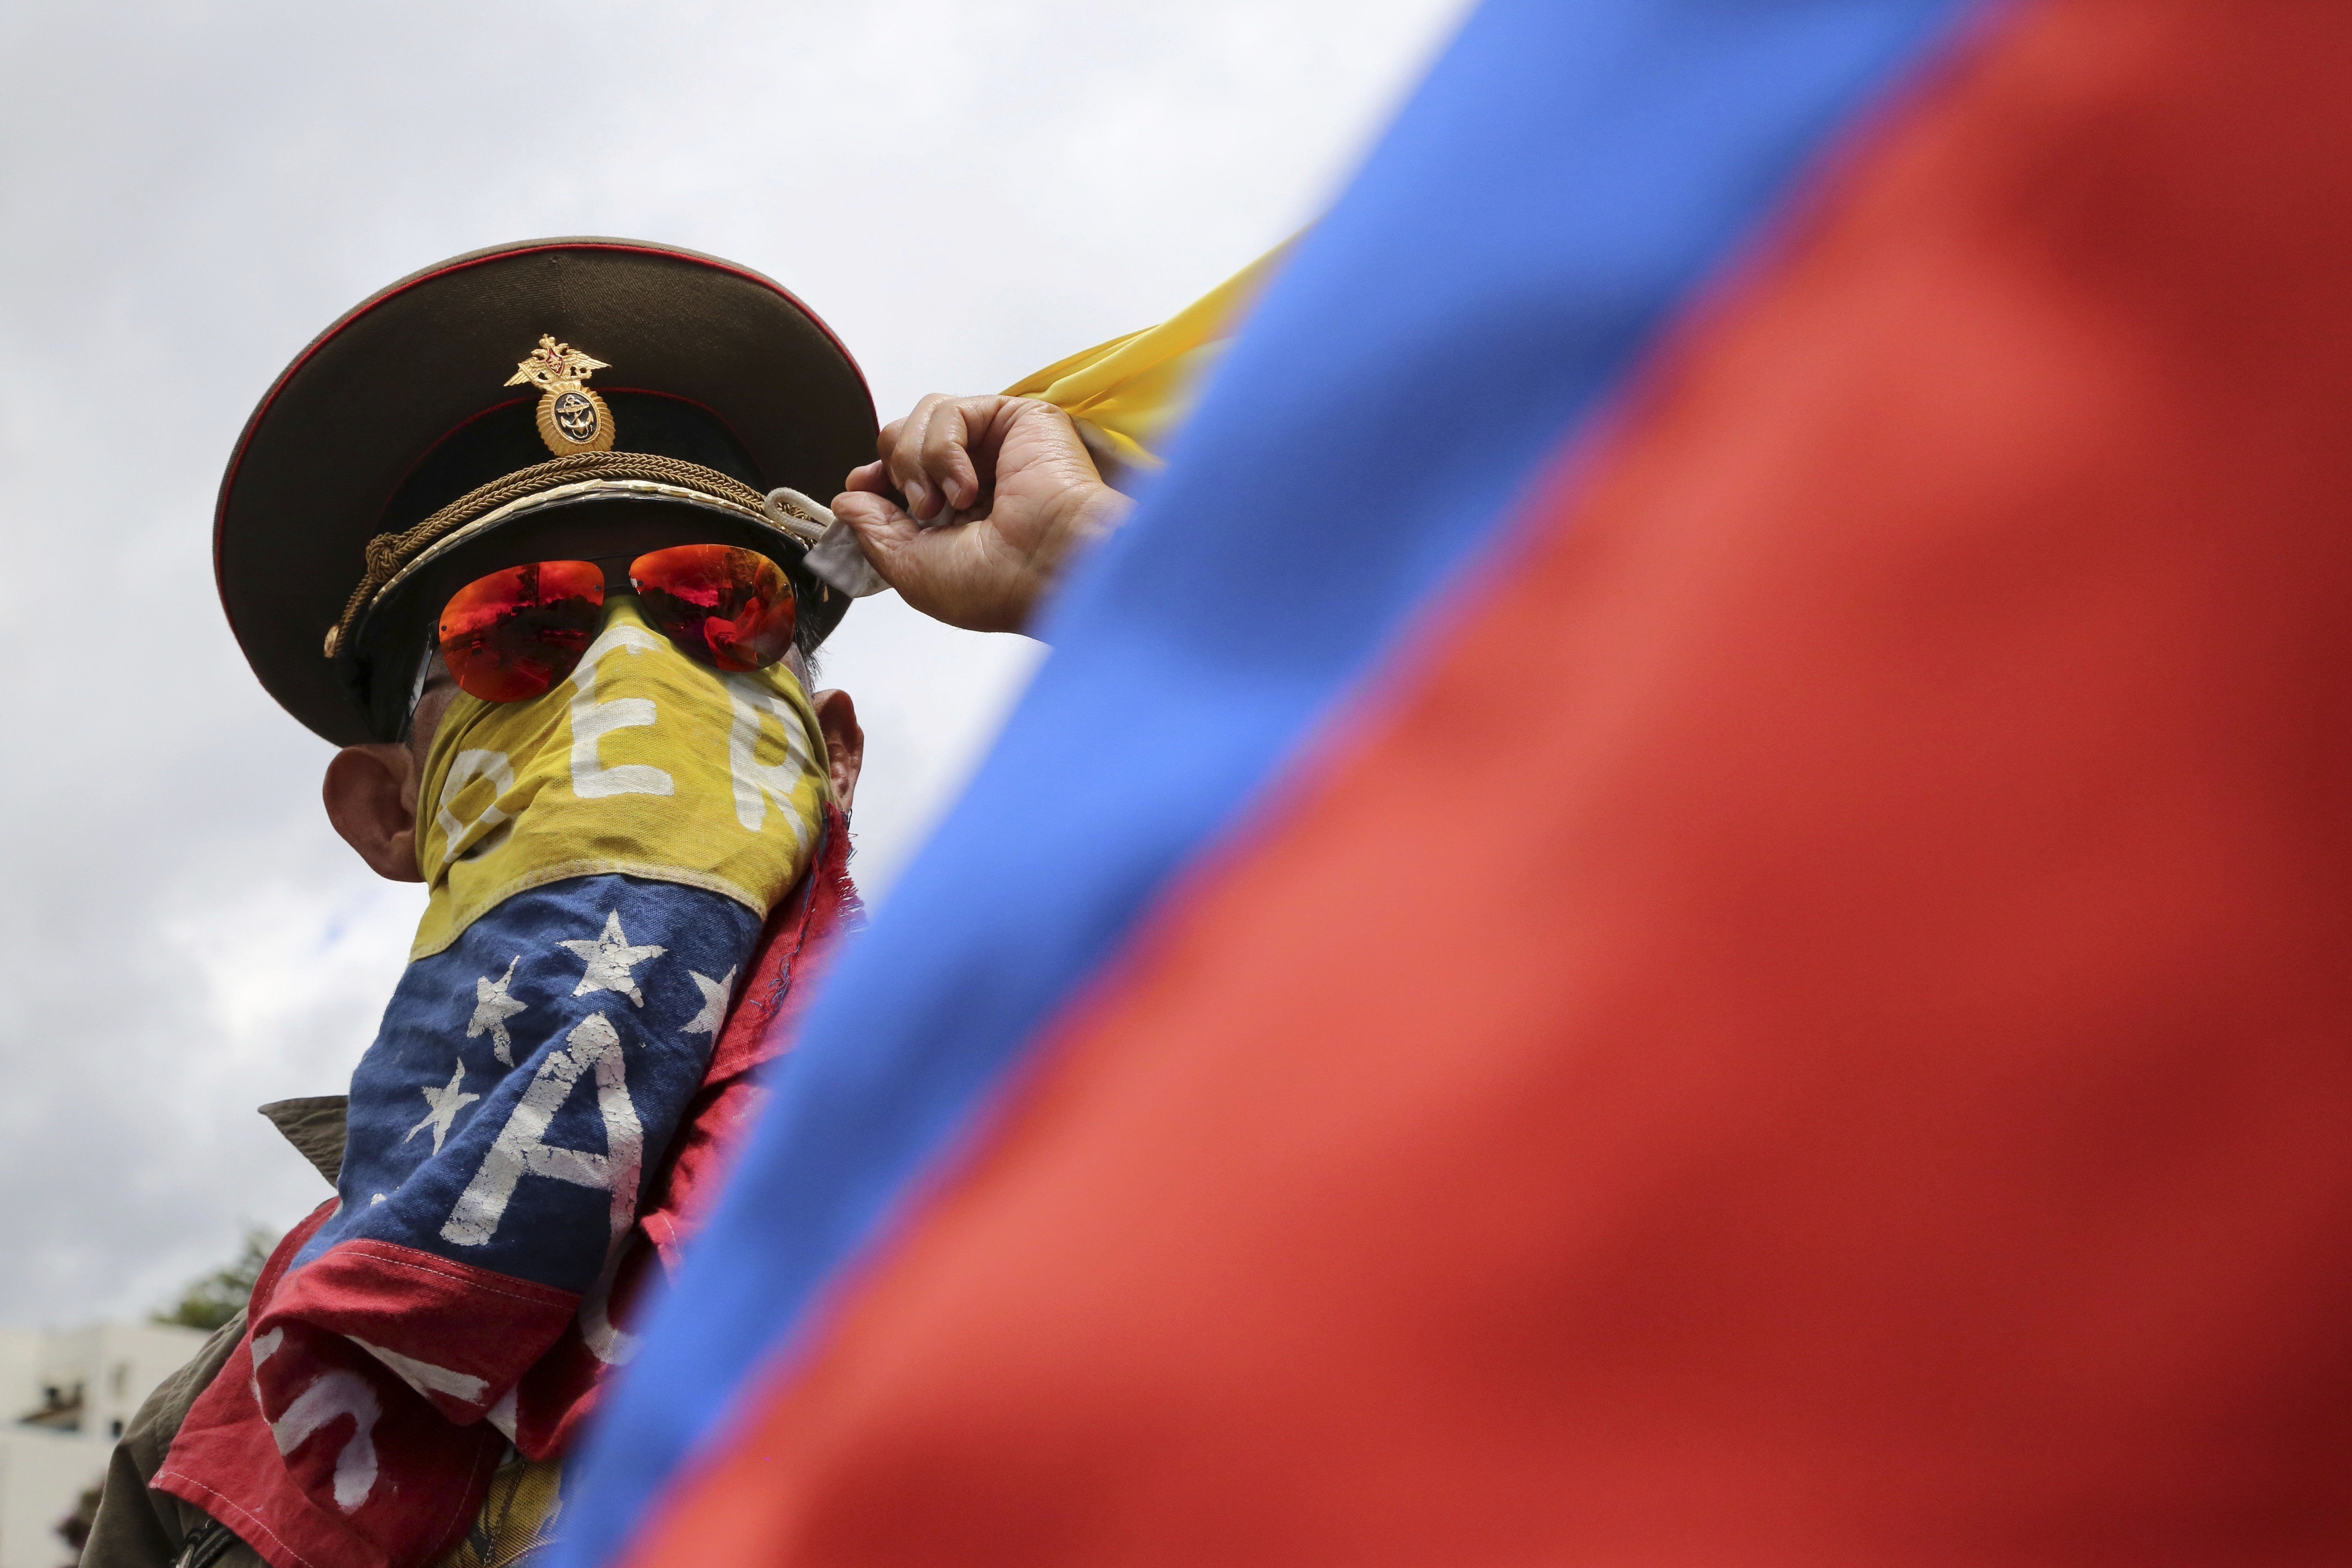 "In this Sunday, Aug. 6, 2017 photo, an anti-government demonstrator wearing a Russian military hat protests the government of Venezuela's President Nicolas Maduro in Caracas, Venezuela. Venezuelan ruling party chief Diosdado Cabello said the military squashed a ""terrorist"" attack at a military base on Sunday, shortly after a small group of men dressed in military fatigues released a video declaring themselves in rebellion. (AP Photo/Wil Riera)"